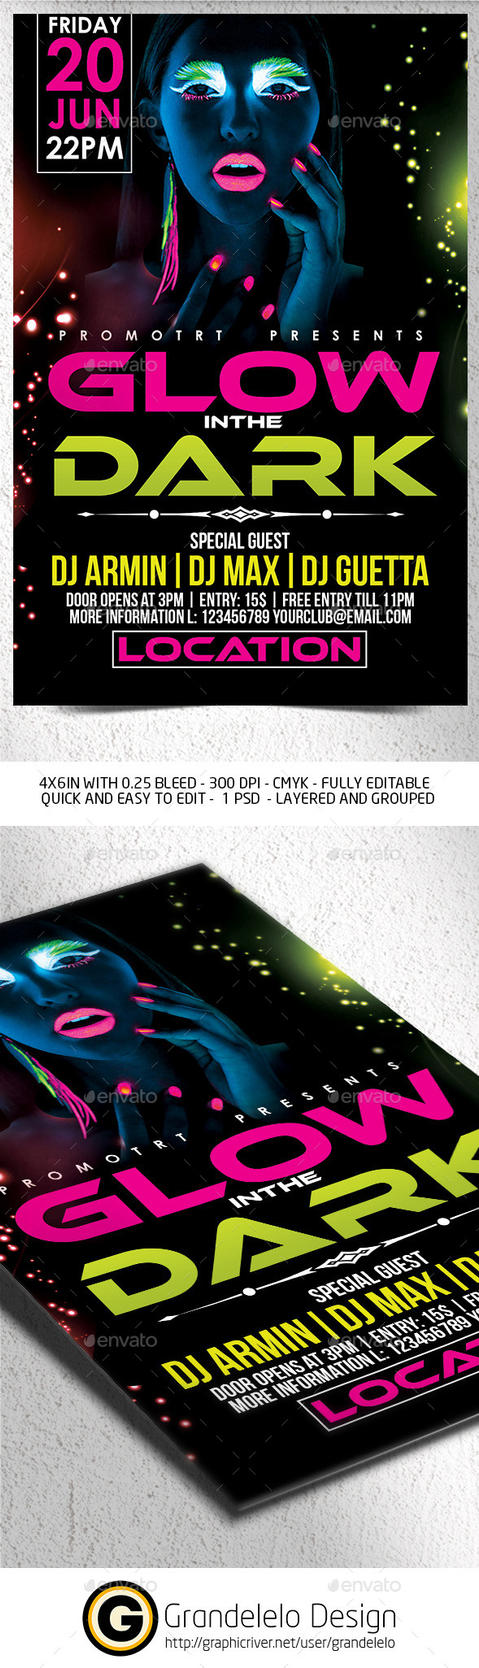 Glow in the Dark Flyer Template .PSD by Grandelelo